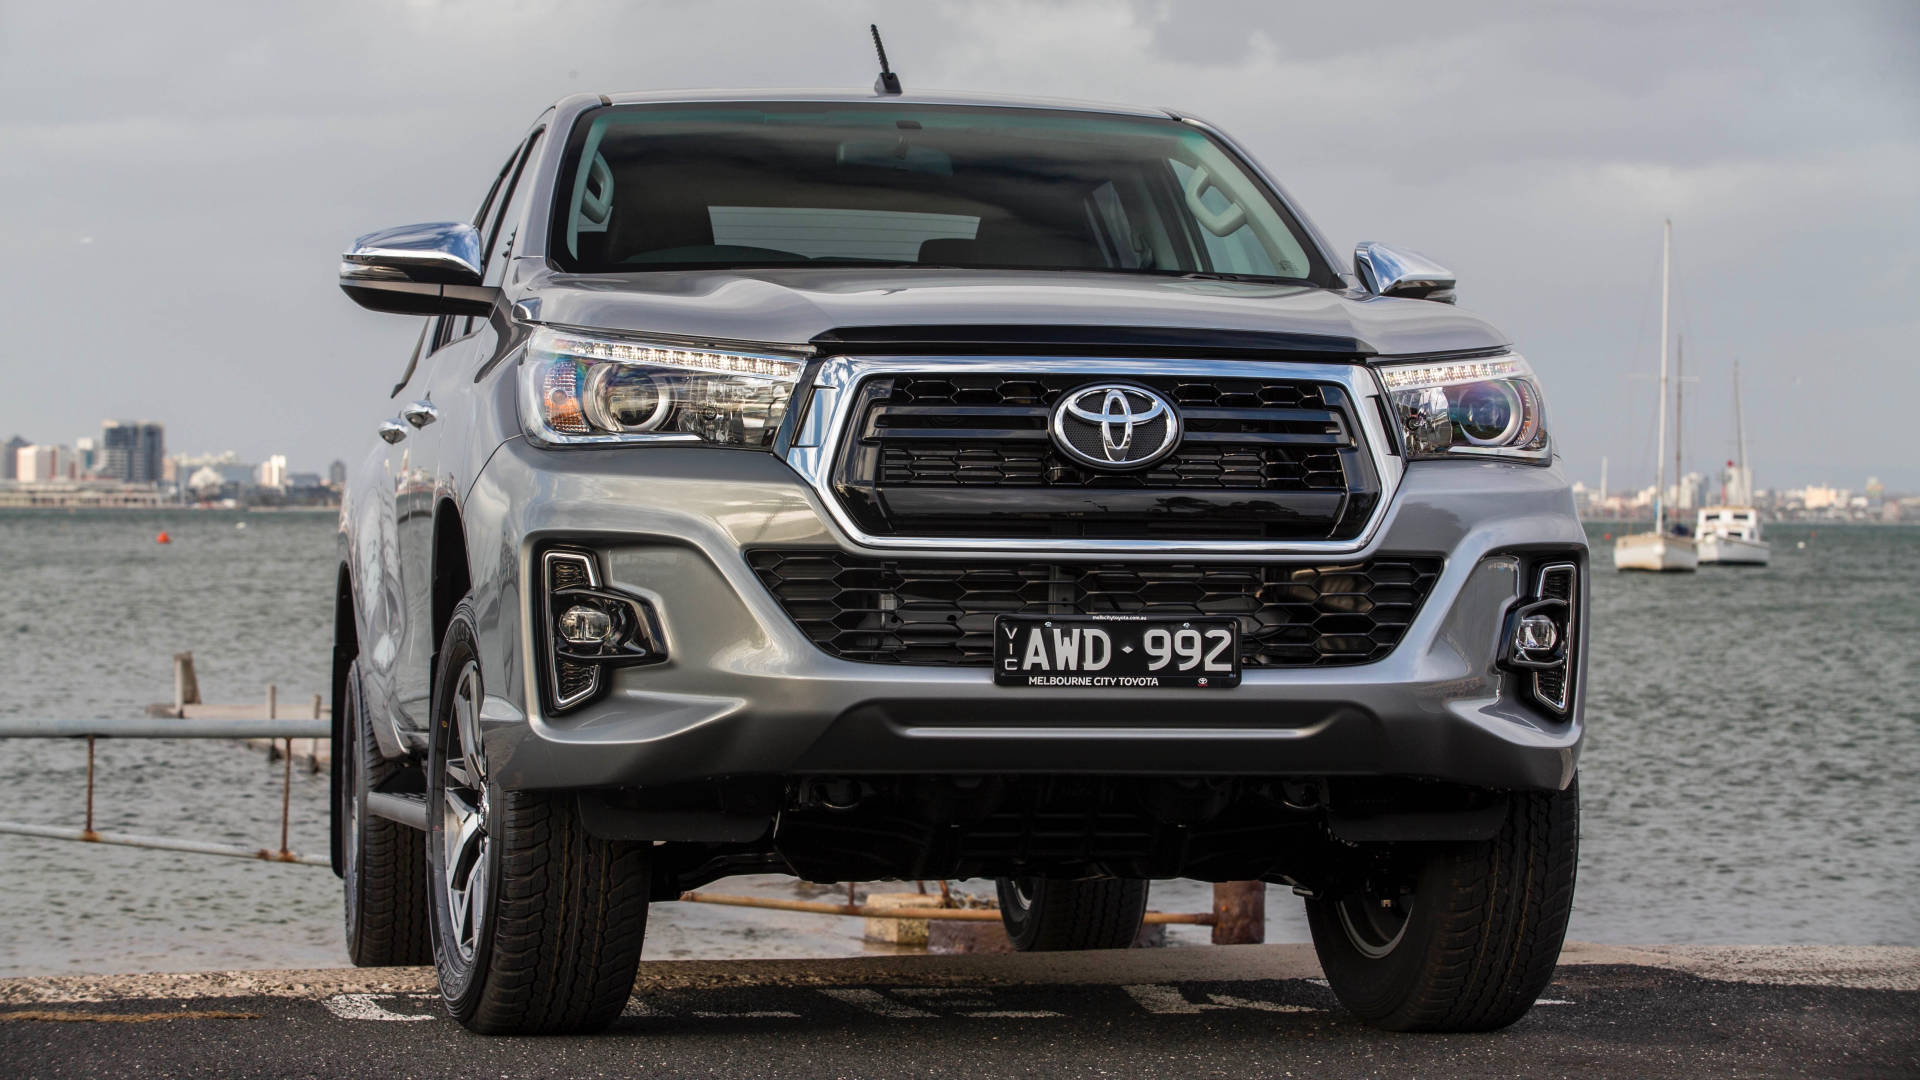 2019 Toyota HiLux SR5 silver front detail